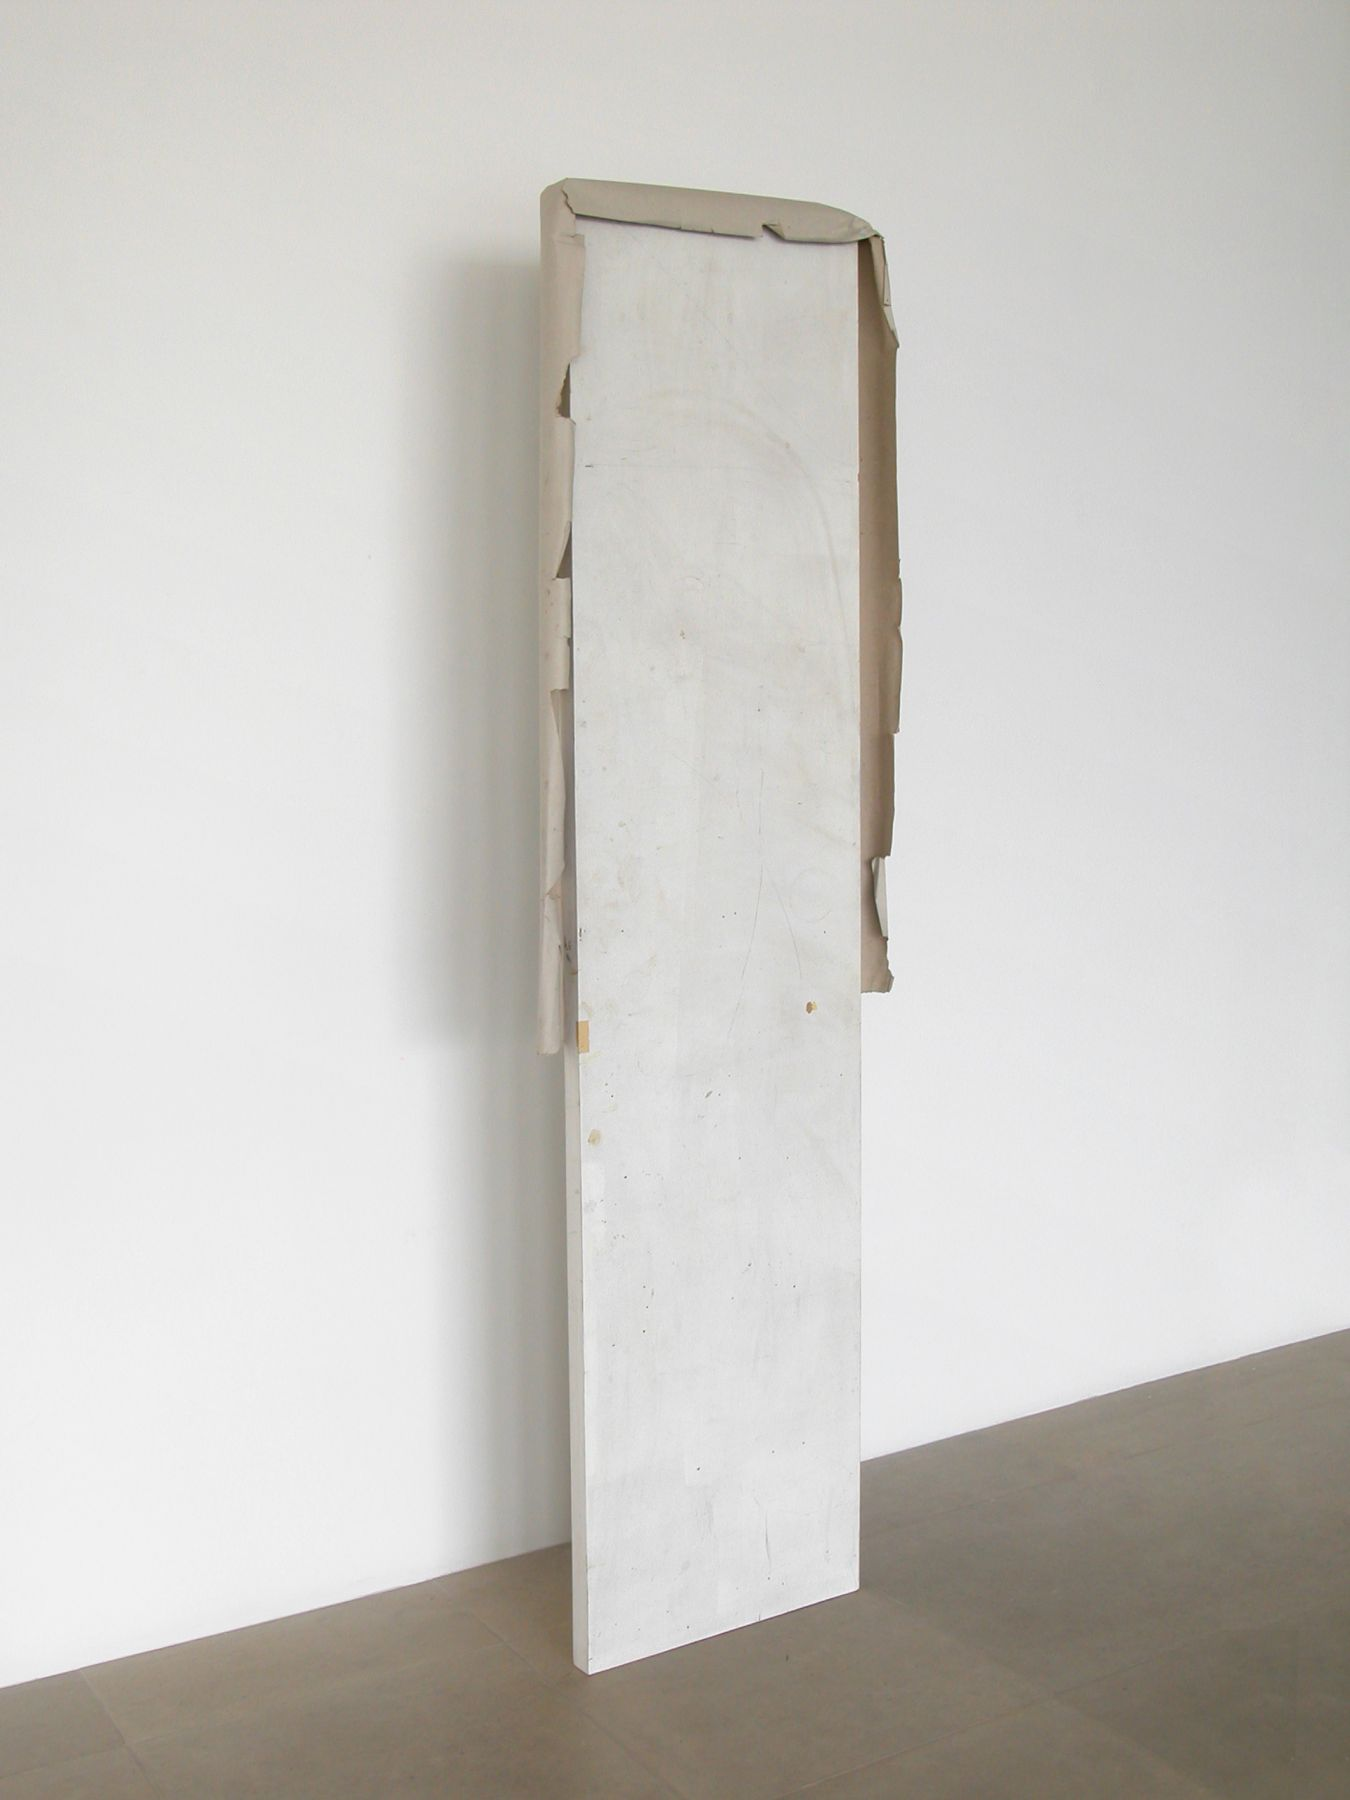 Partly Me Manners, 2008, Door, paper, 88 x 24 x 4 inches